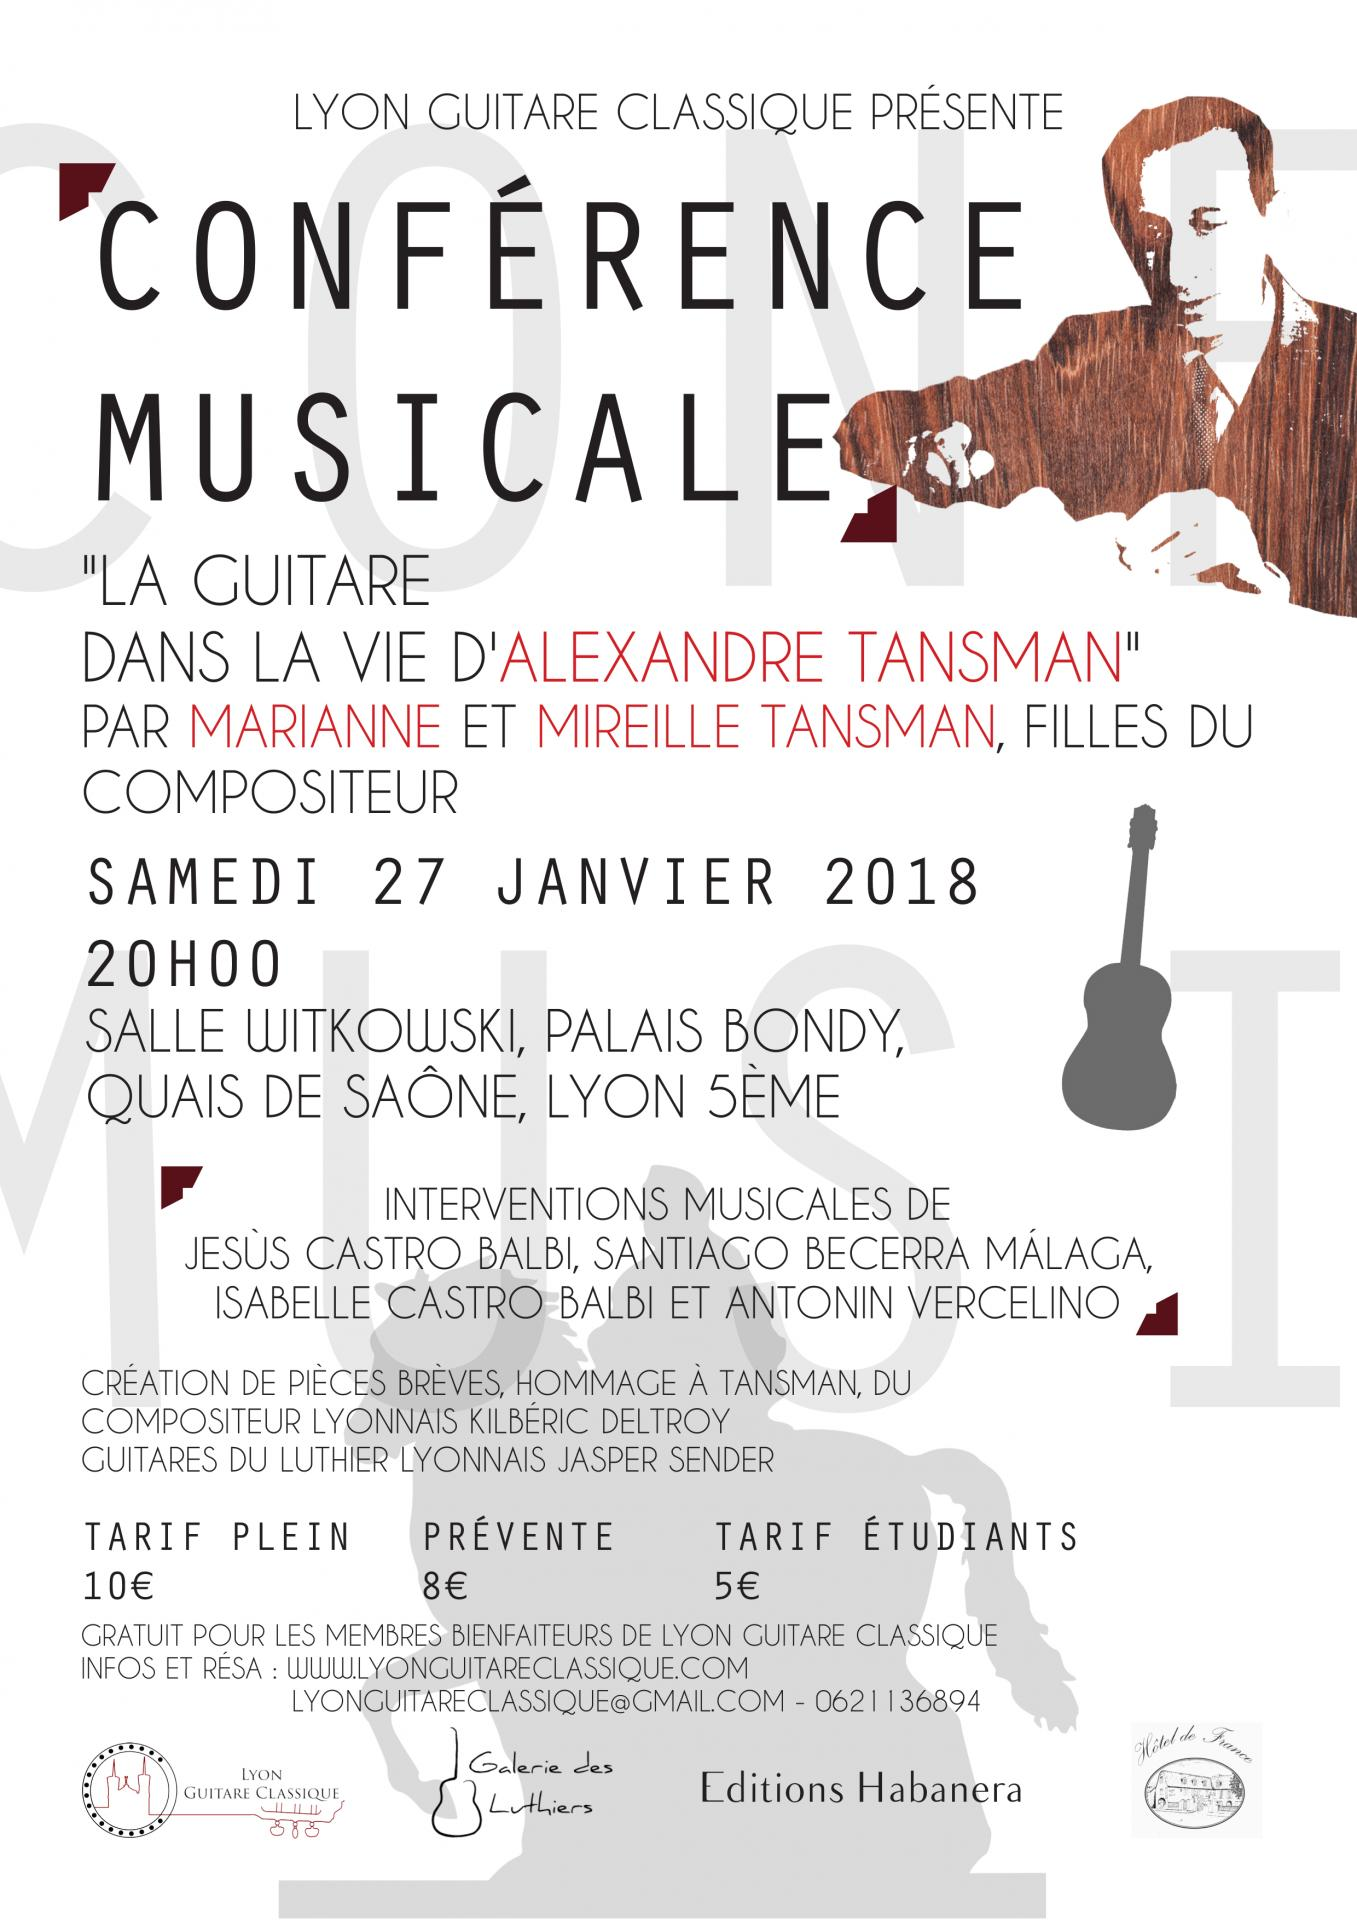 Conference musicale tansman 27 01 18